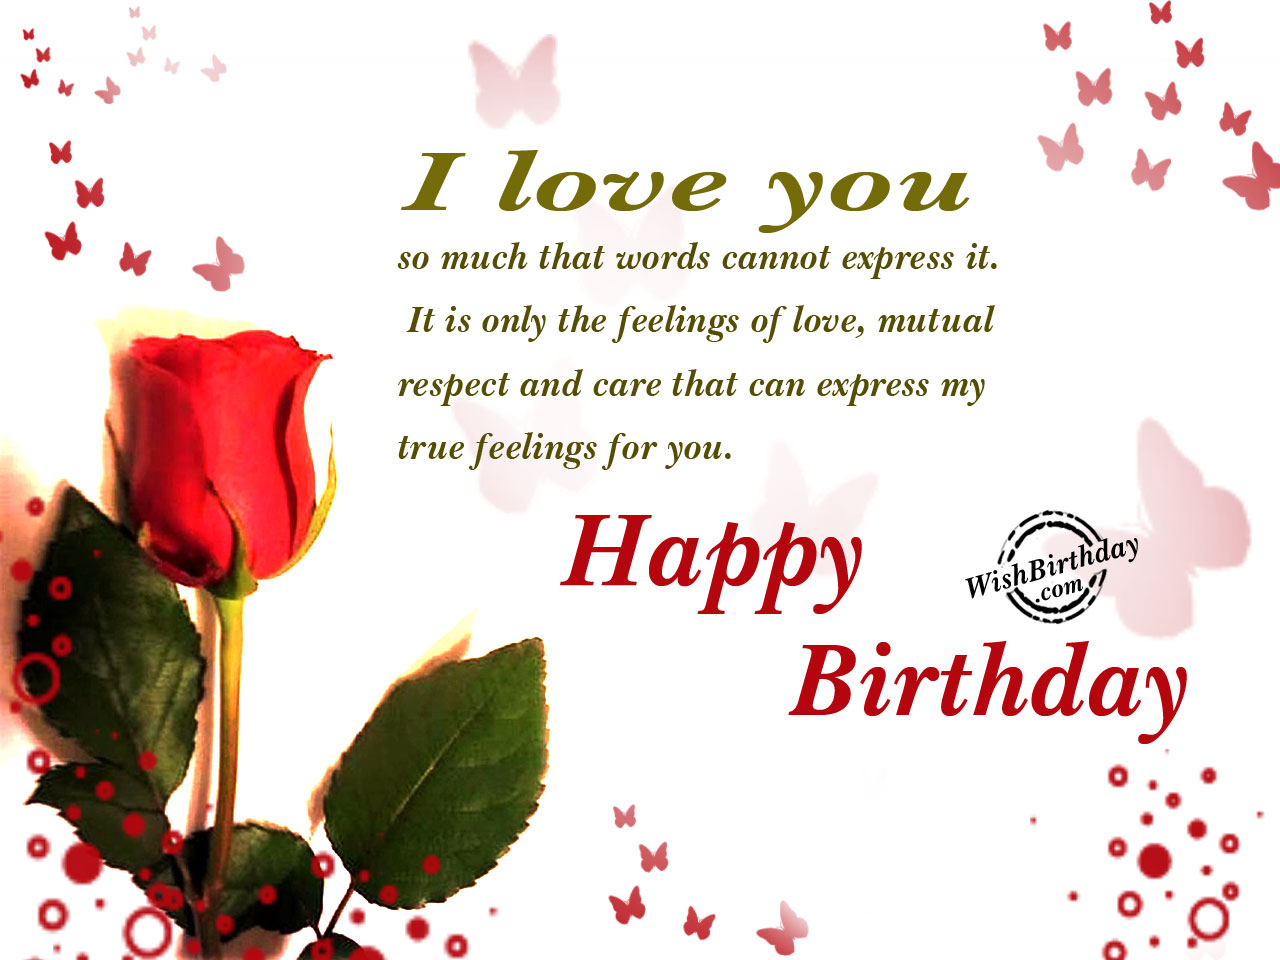 Happy Birthday Indu Di ^^** | 4870319 | Kuch Toh Log ...